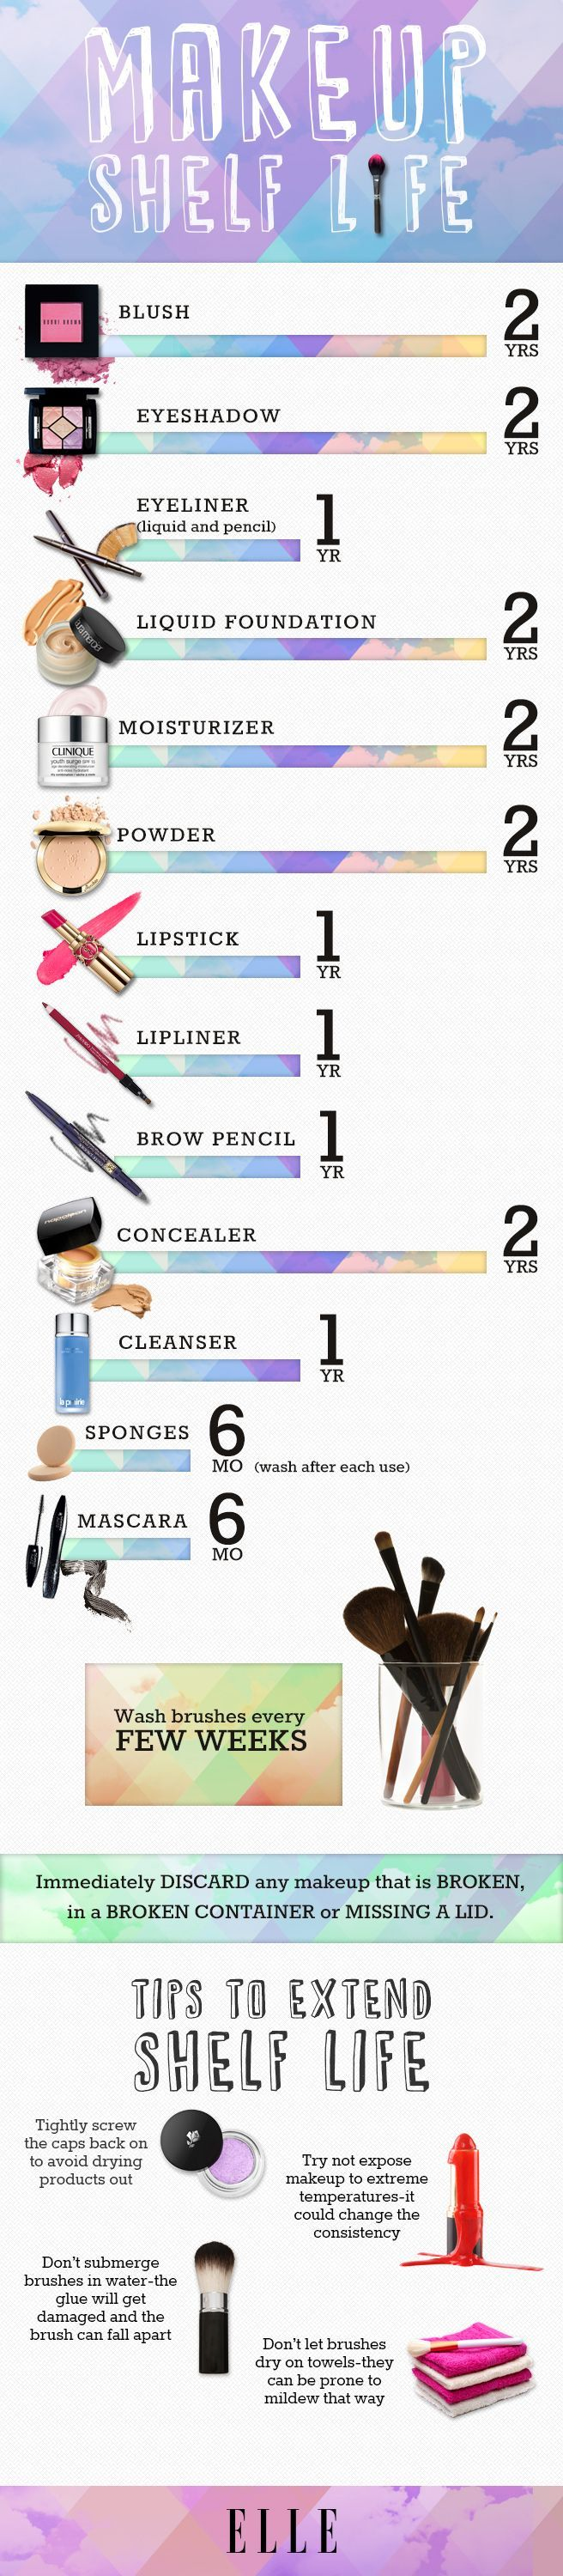 Are you keeping your makeup past its expiration date? Here's our handy guide.